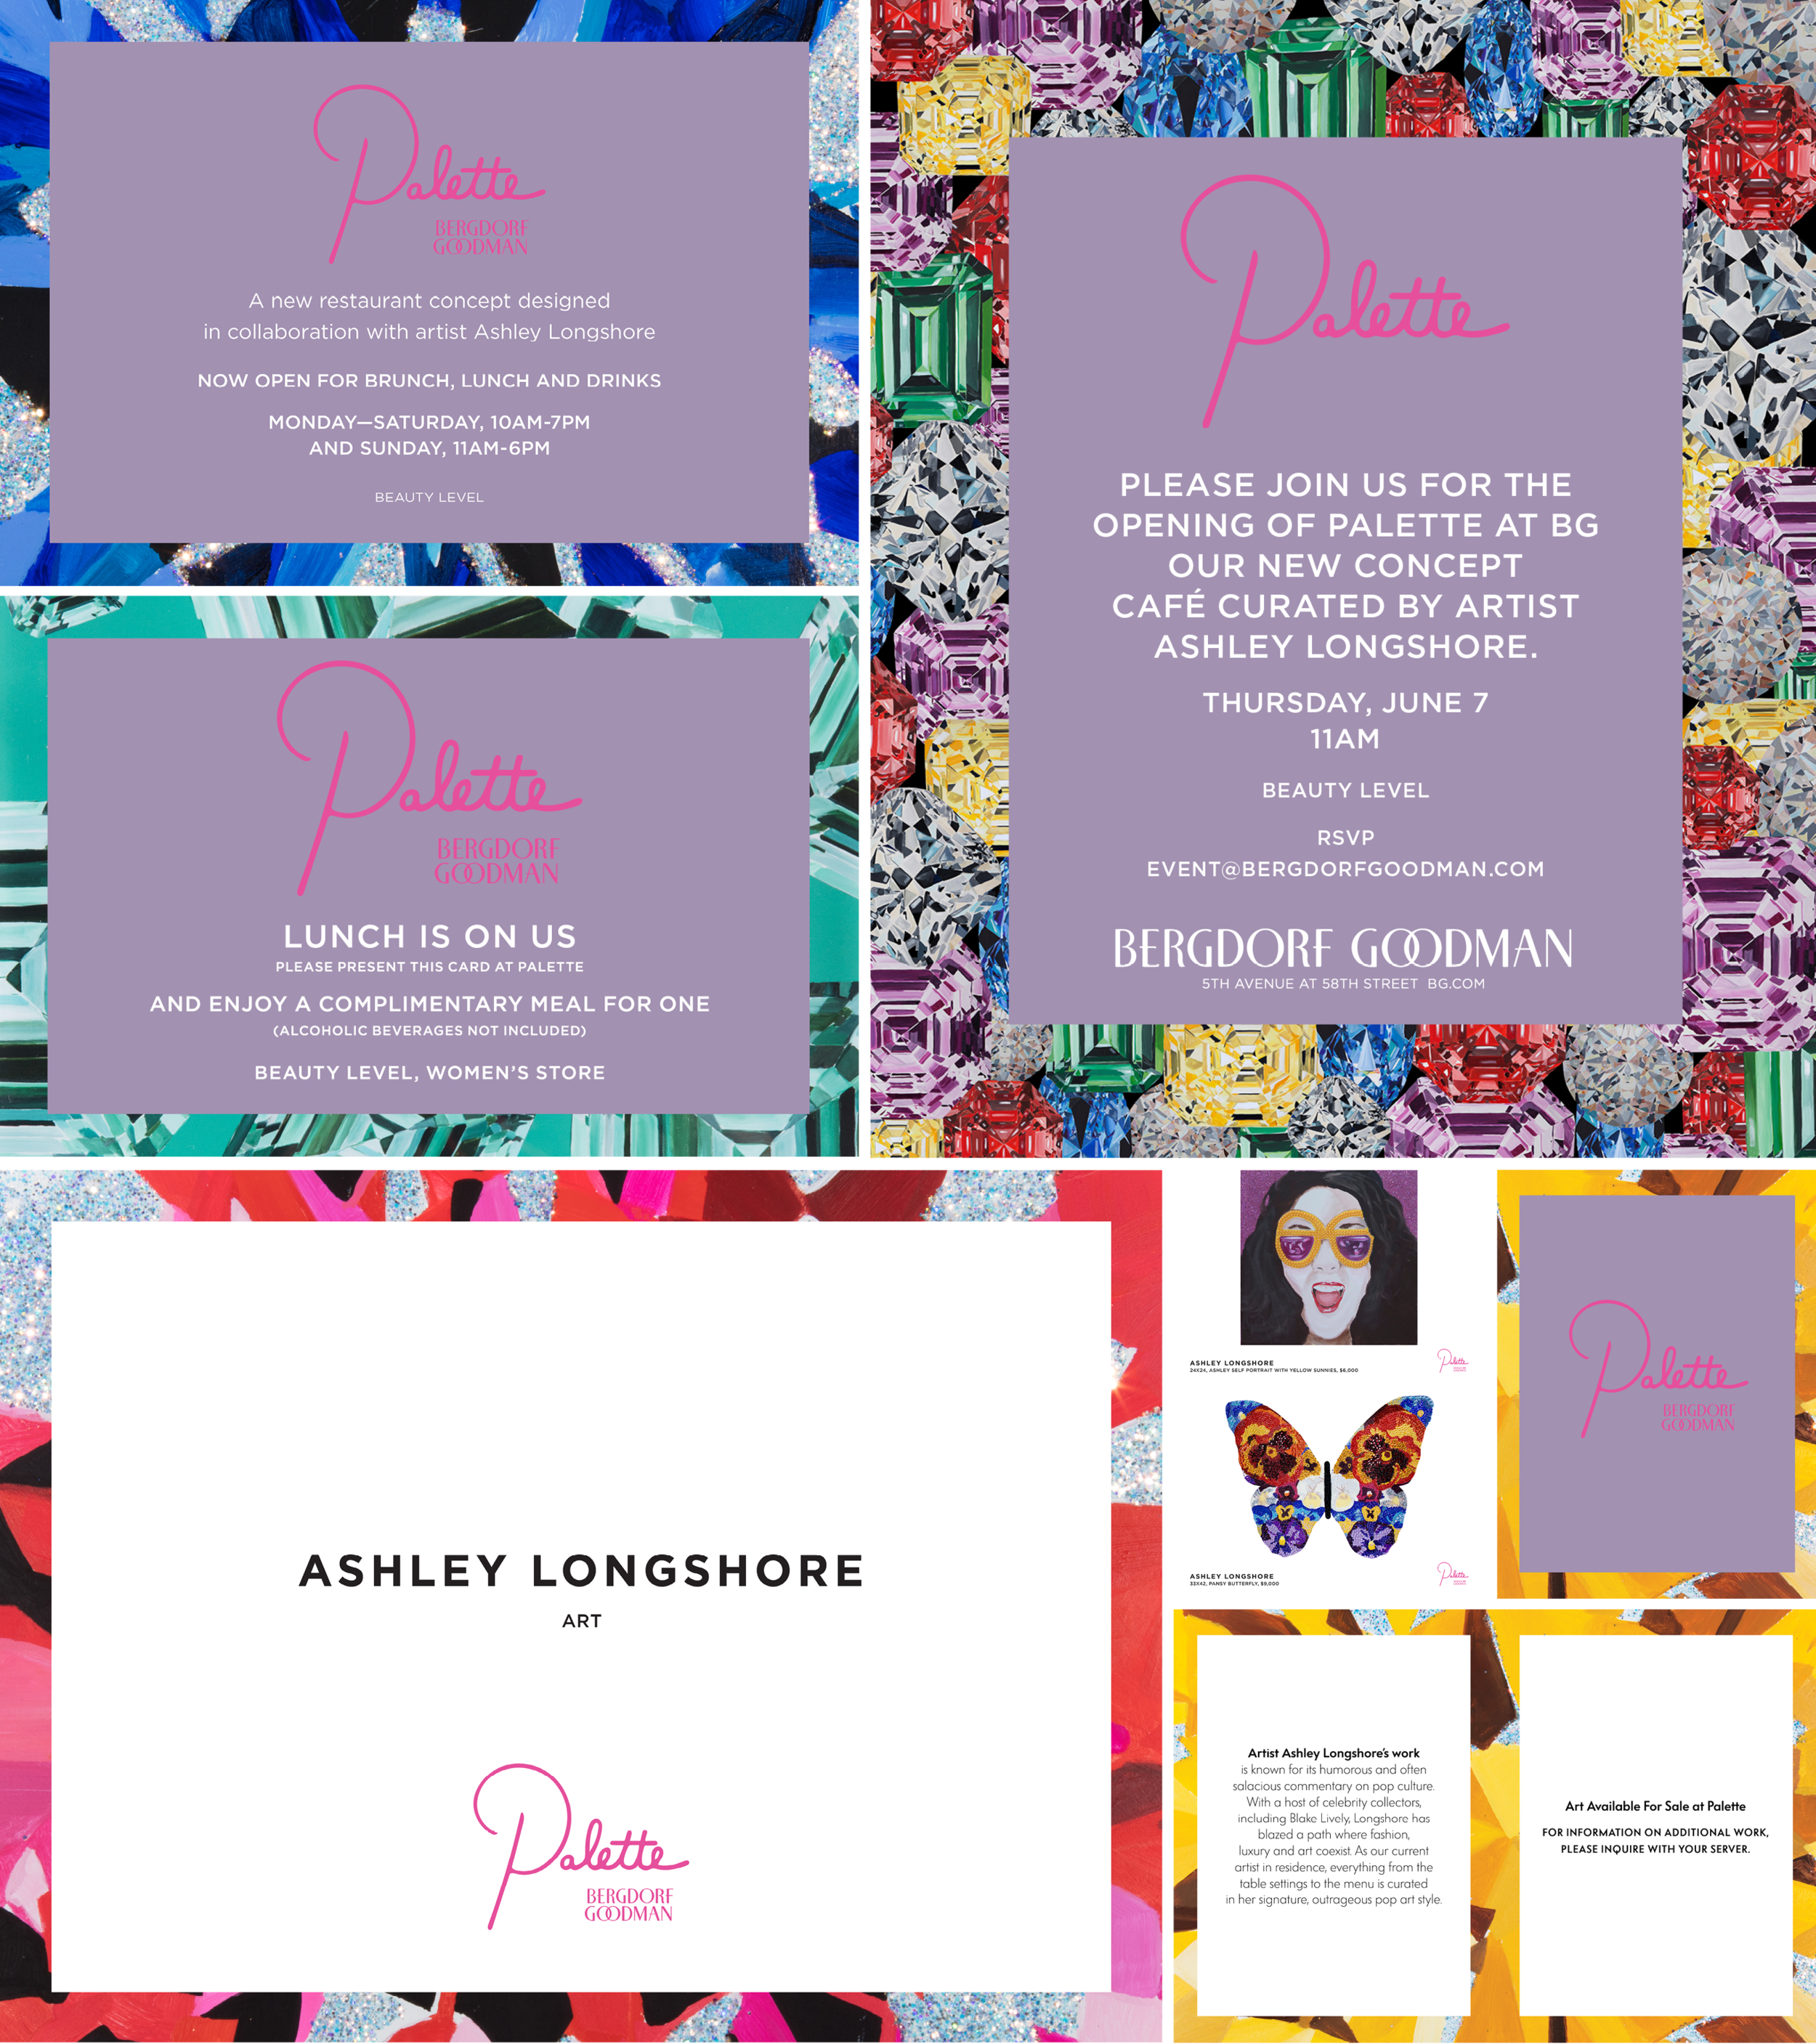 Overview of materials designed for the launch of Bergdorf Goodman's concept pop-up restaurant, Palette. Design. Logo and Art by Ashley Longshore.